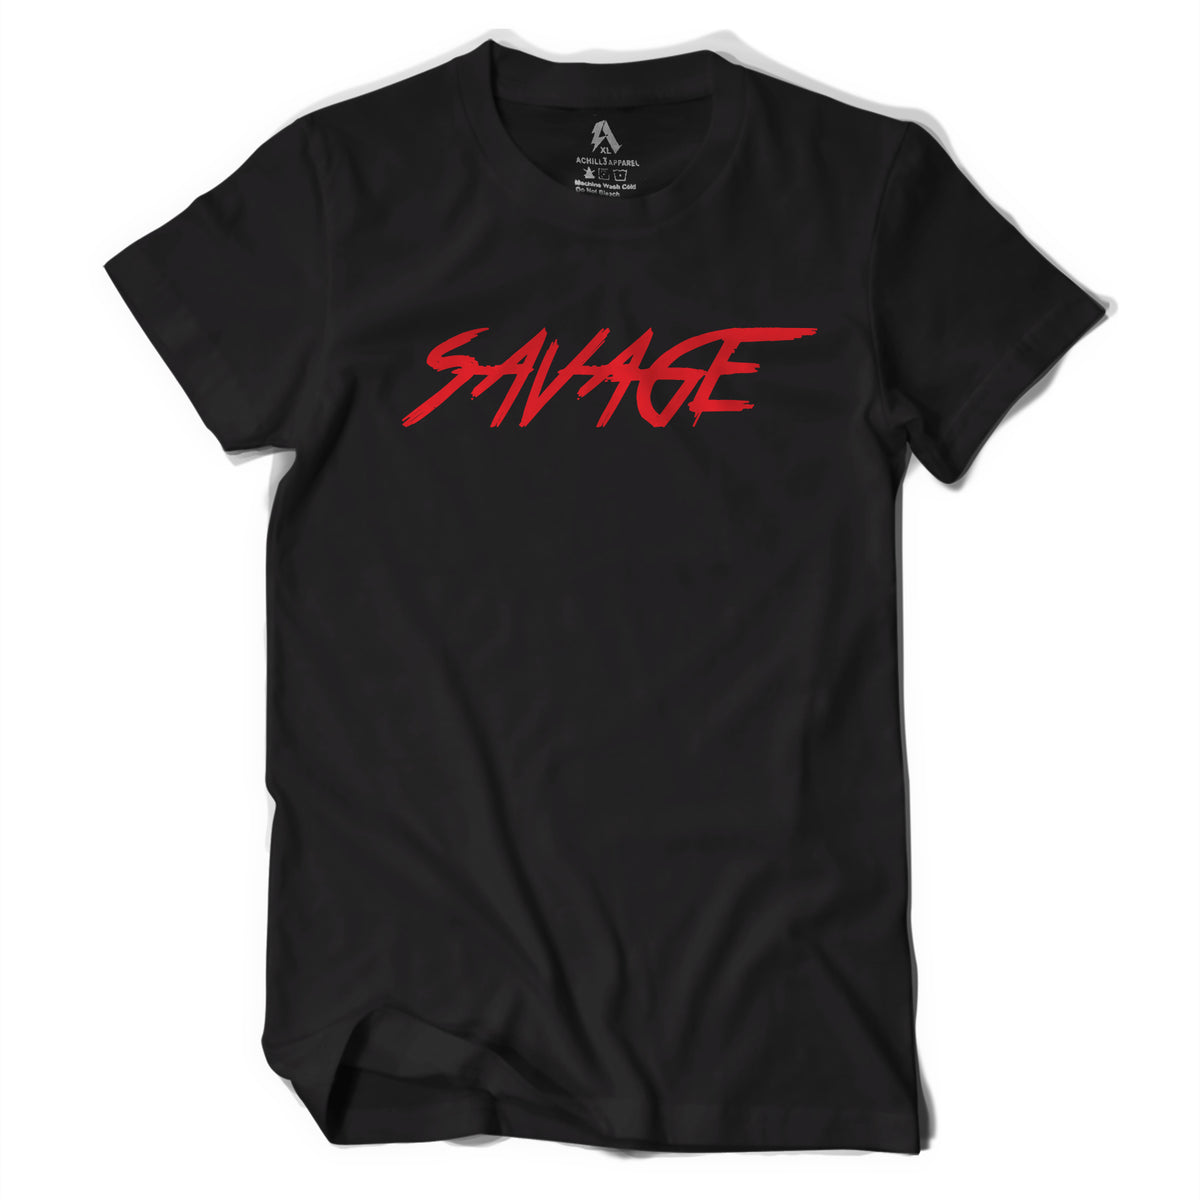 Black and Red Savage T-Shirt